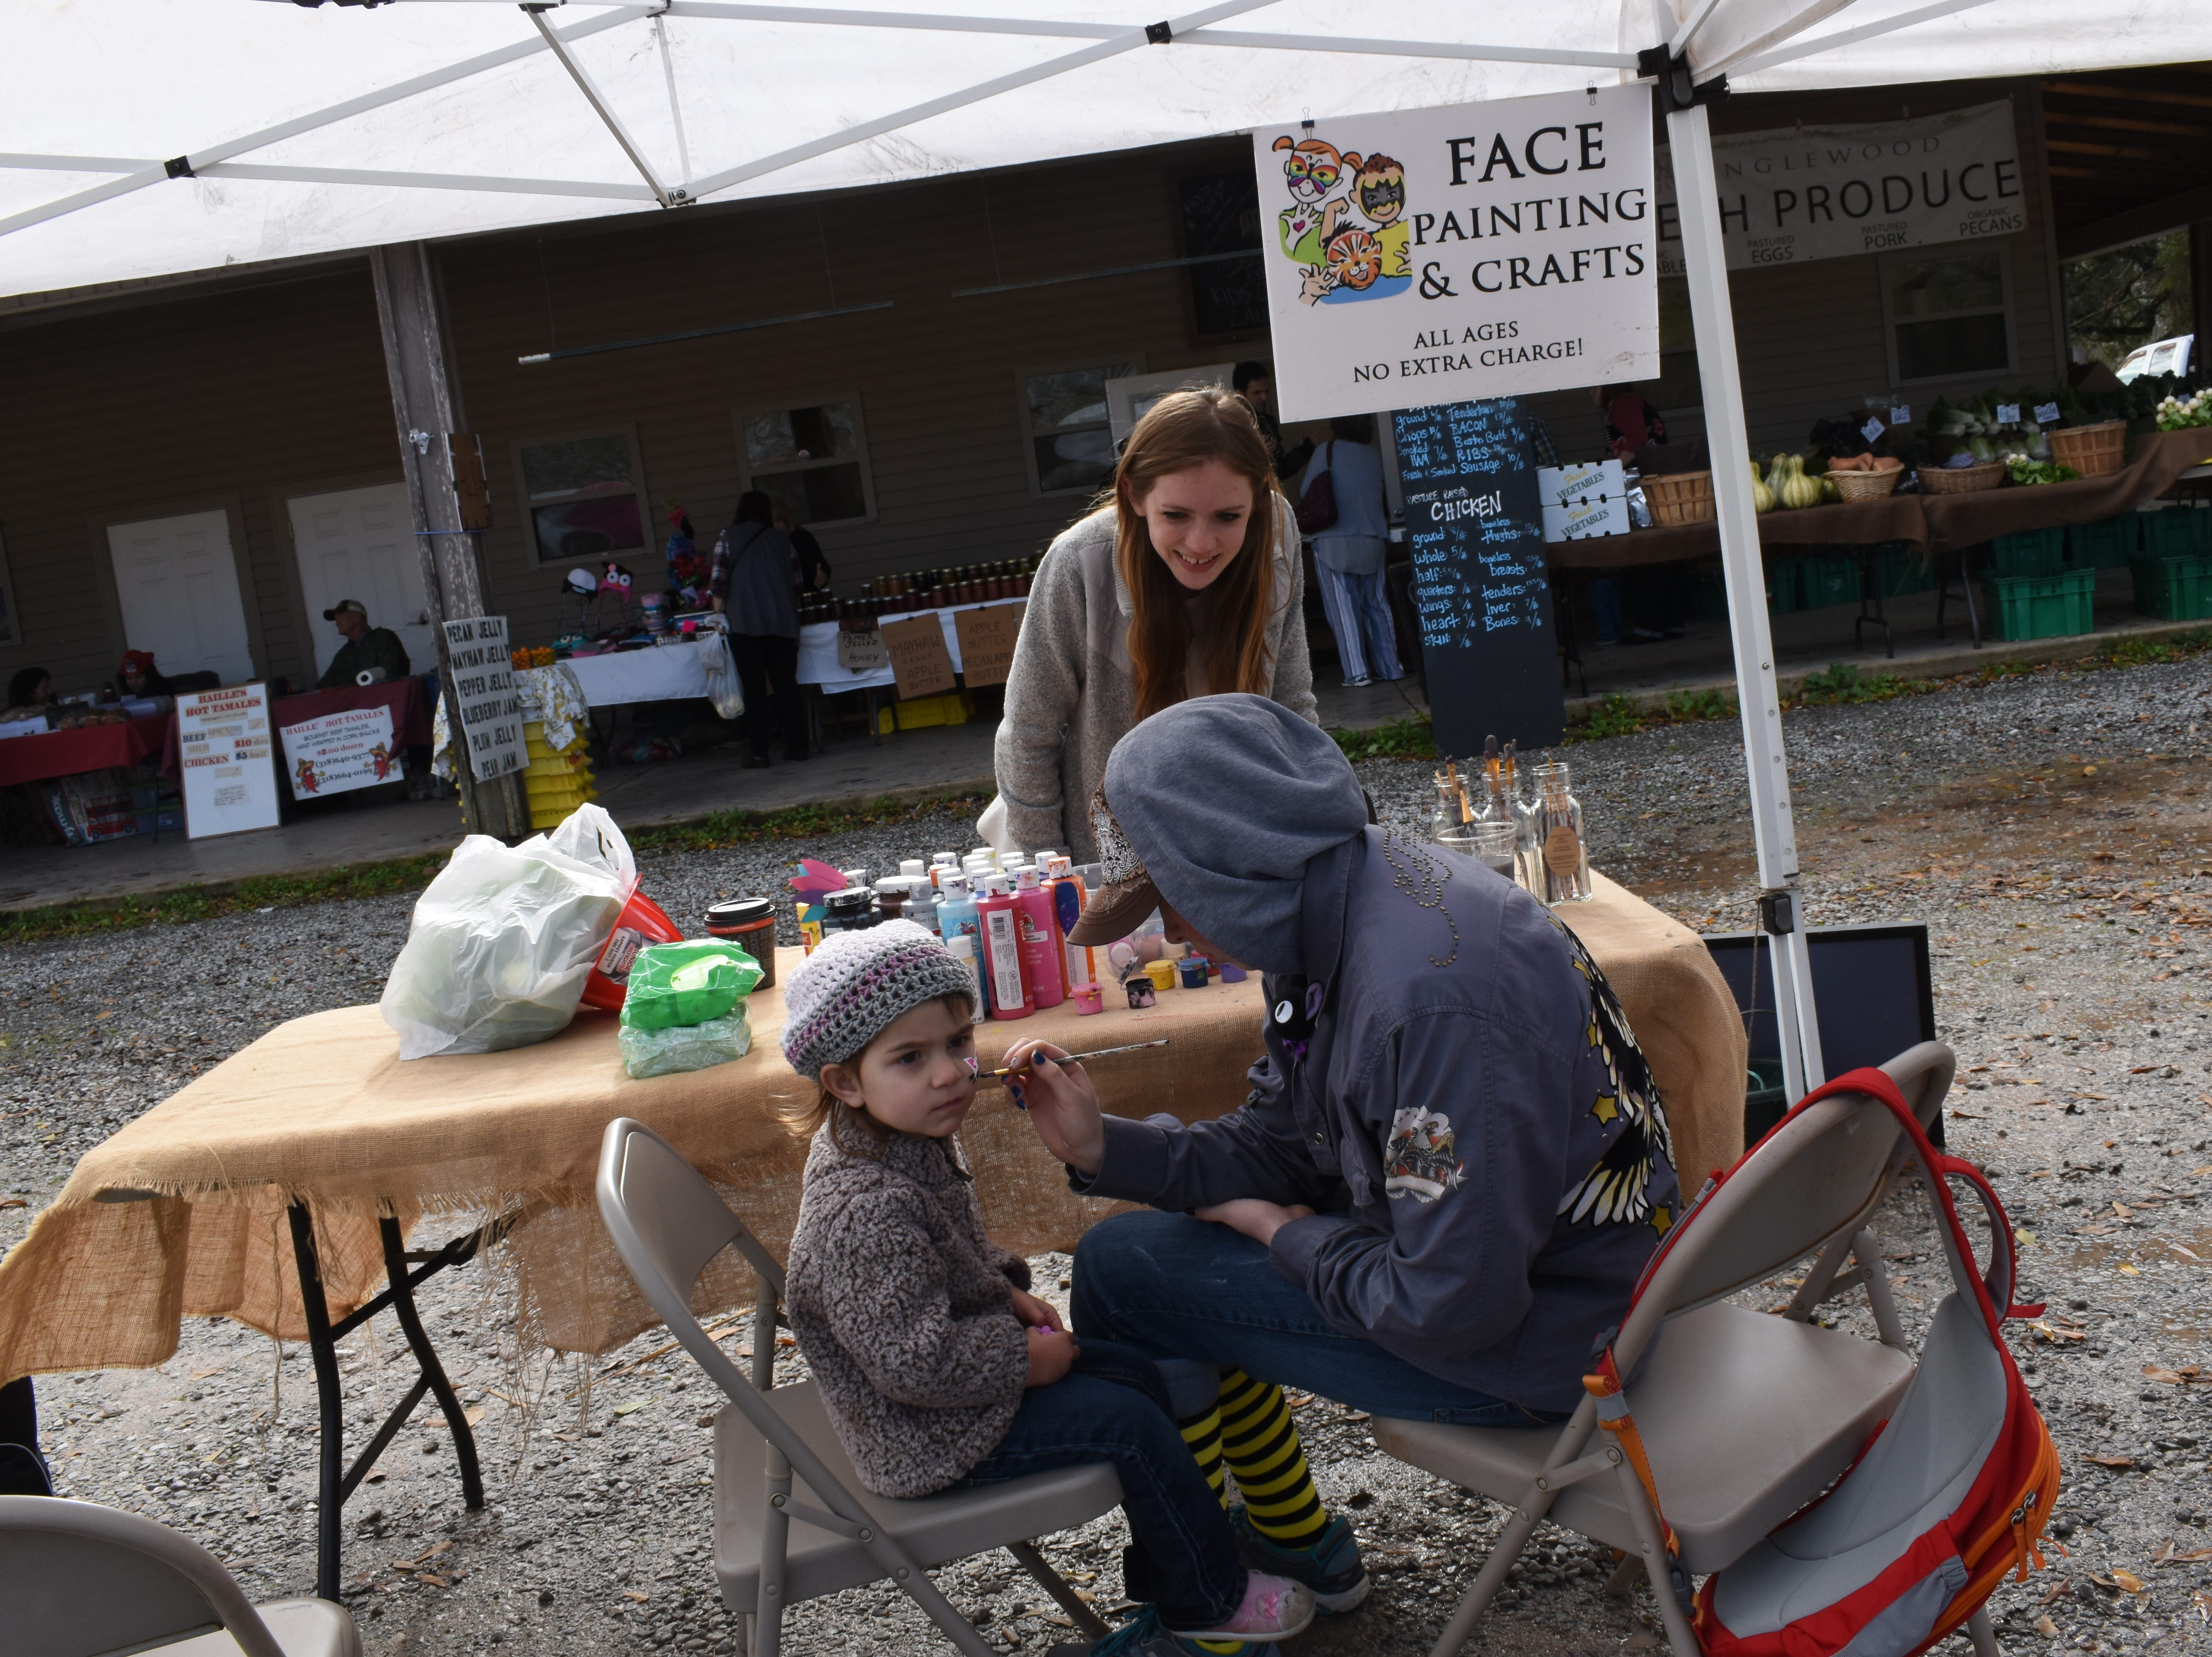 Inglewood Harvest Barn Market kicked off their Harvest Barn Kids Club at their weekly Saturday market on Jan. 21, 2019. The first 20 children to show up at each market get $5 worth of tokens that can be spent with vendors at the market that day. To celebrate the launch of the new kids' club, Dirty Dog,  Inc. brought dogs available for adoption; Hayes E Daze Ranch provided pony ride; a Rapides Parish District fire engine and firefighters were on hand; and face painting was offered. Other activities are planned for future kids' clubs. Inglewood Harvest Barn Market holds their Saturday market from 8 a.m. to noon at 6233 Old Baton Rouge Highway.